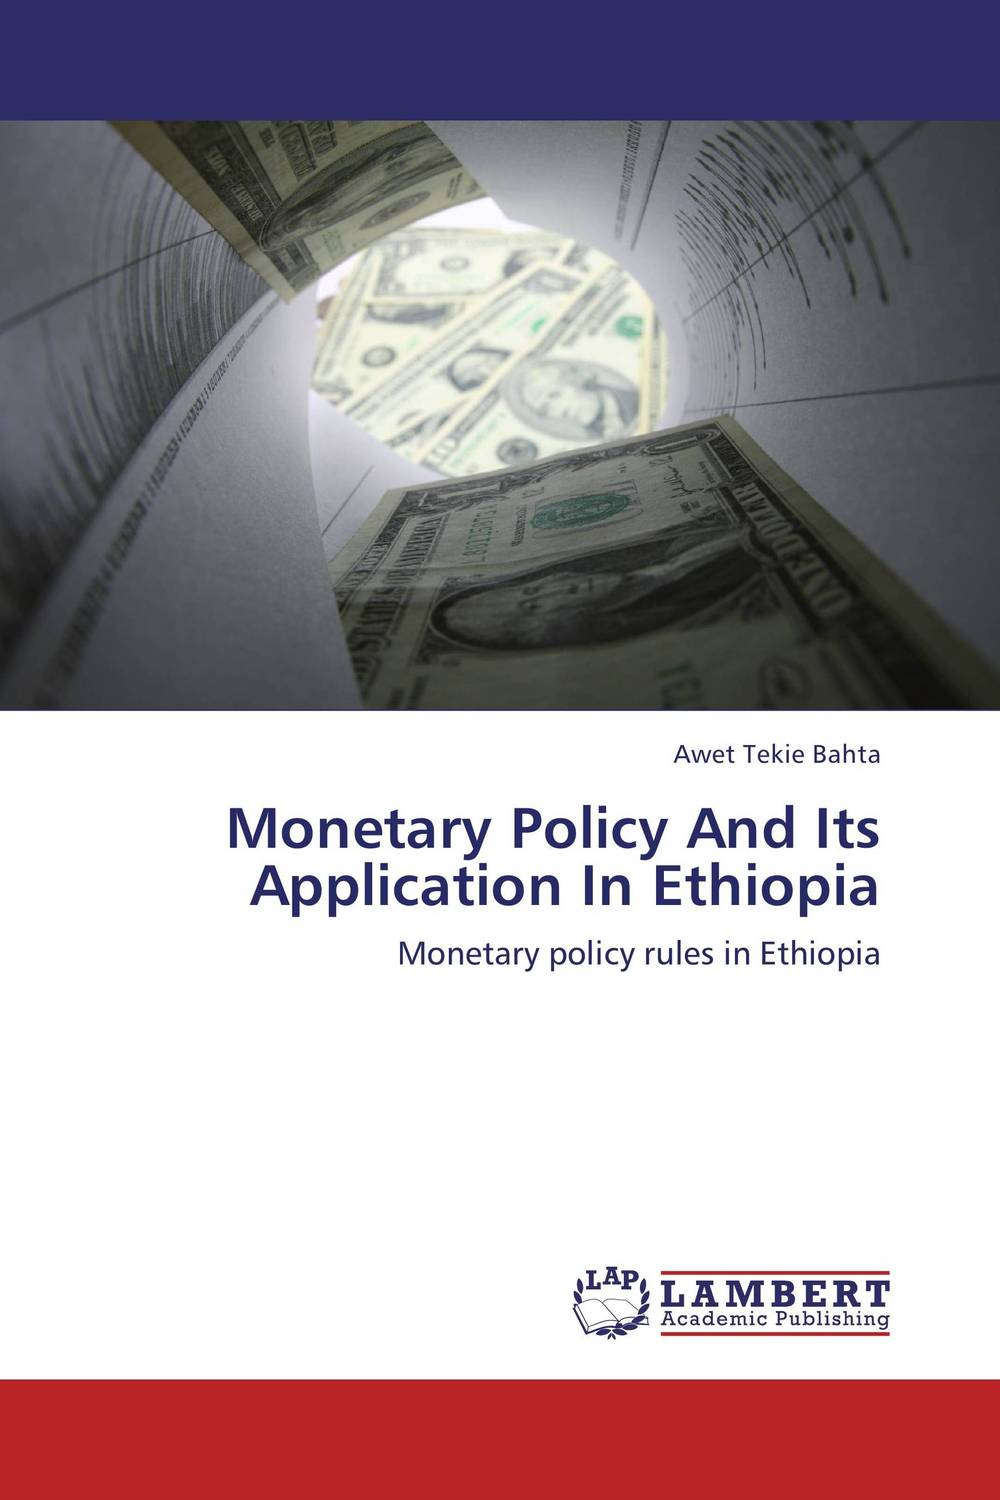 Monetary Policy And Its Application In Ethiopia аскорил таблетки n10